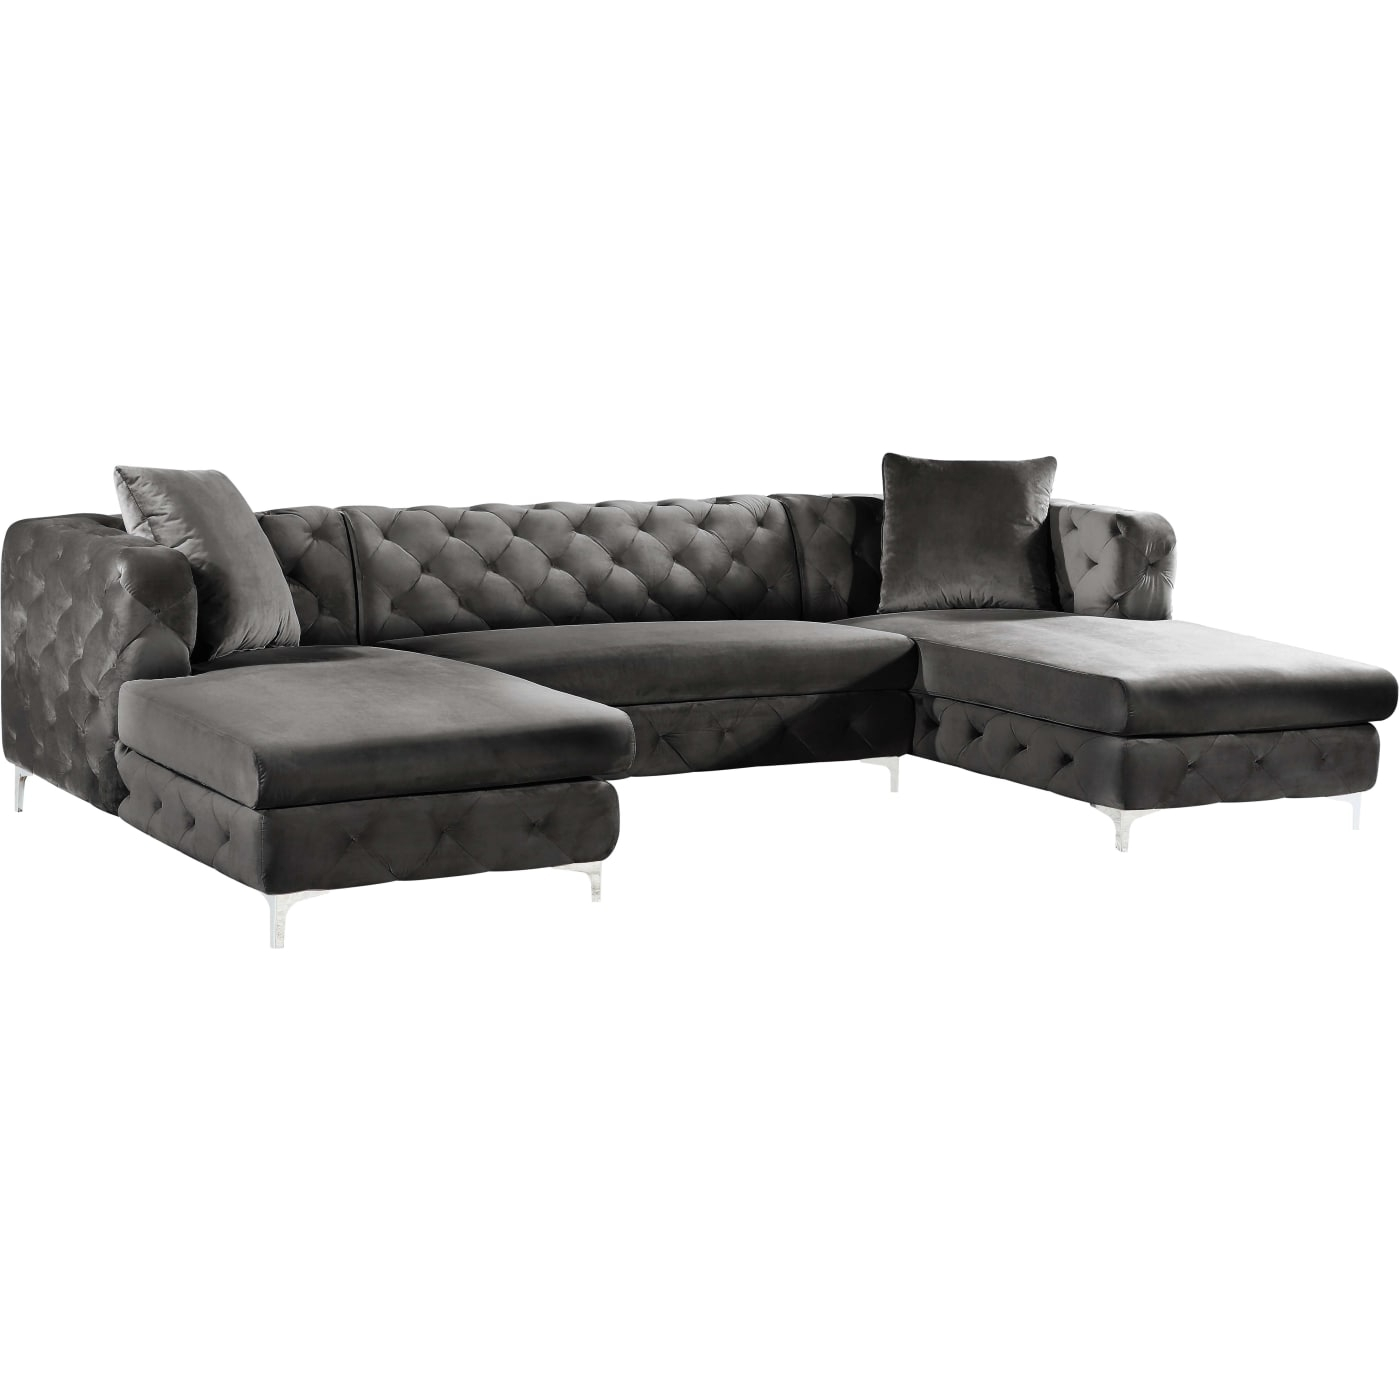 3 Piece Sectional Sofa With Chaise Reviews | Baci Living Room In Malbry Point 3 Piece Sectionals With Raf Chaise (View 23 of 30)